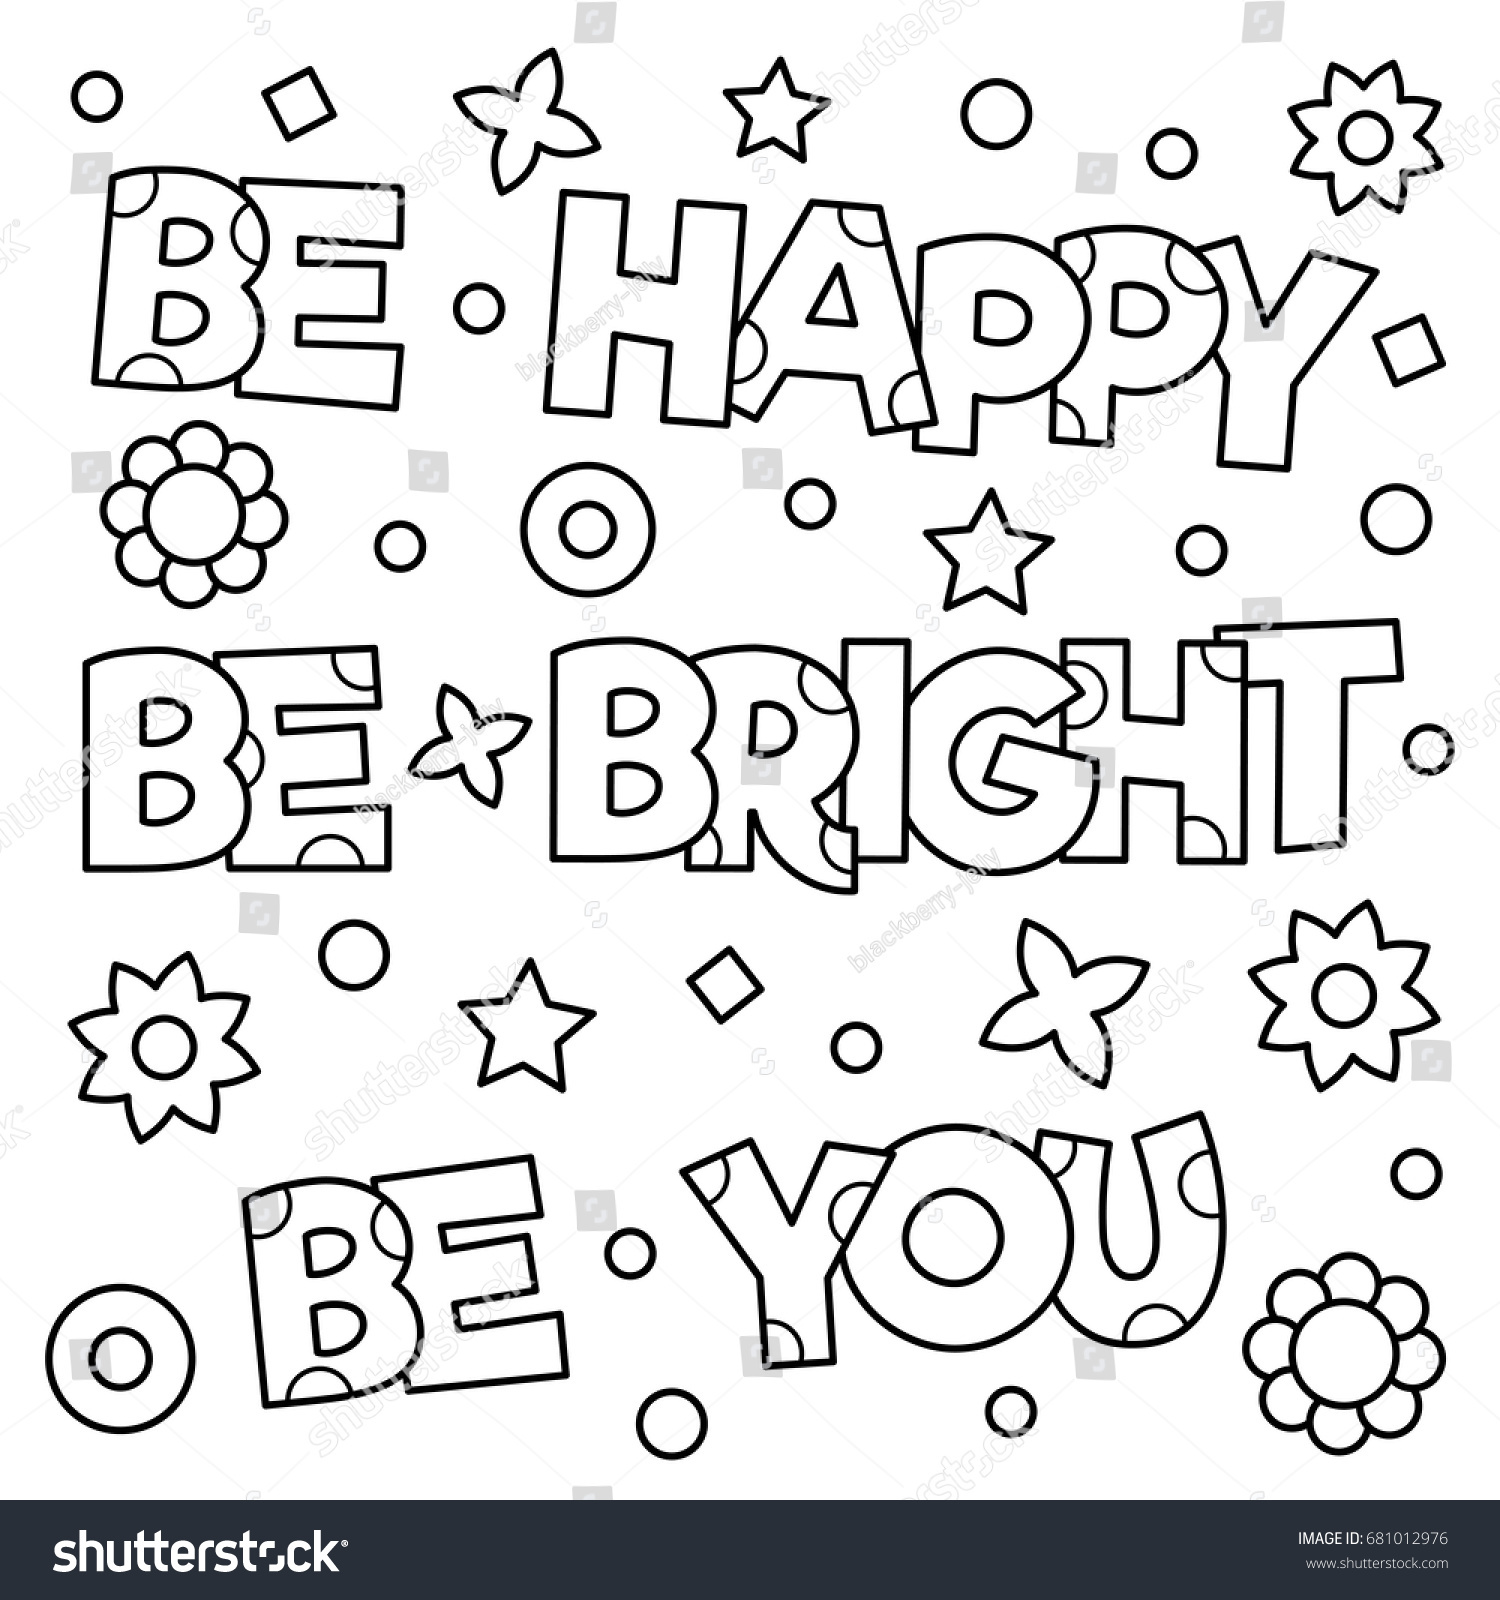 Inspirational Coloring Page Black White Vector Stock Vector